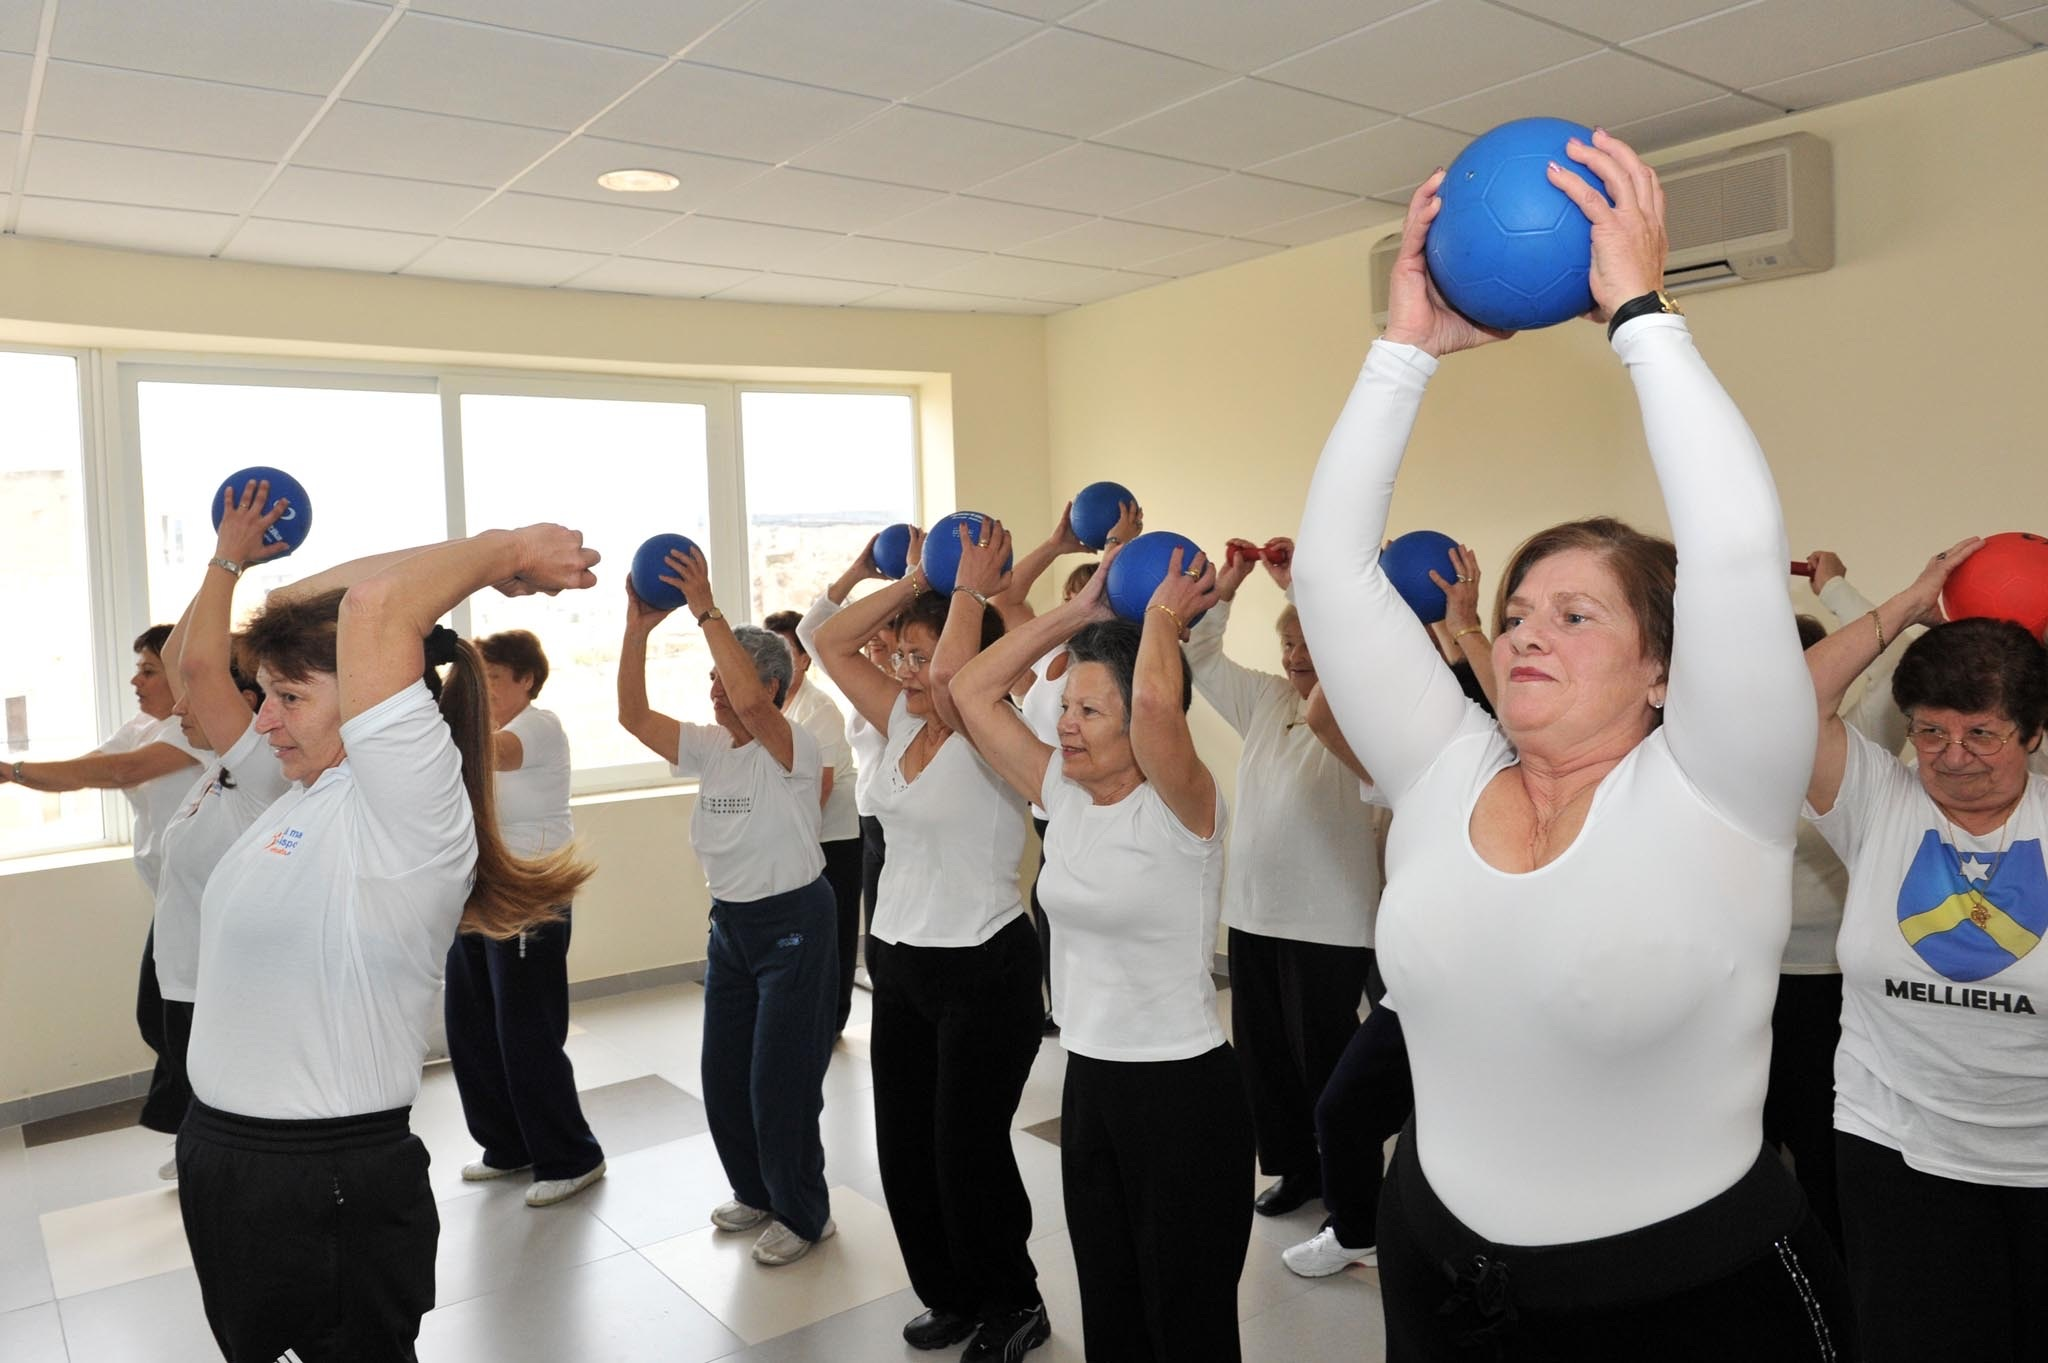 council, fitness classes, sports, elderly